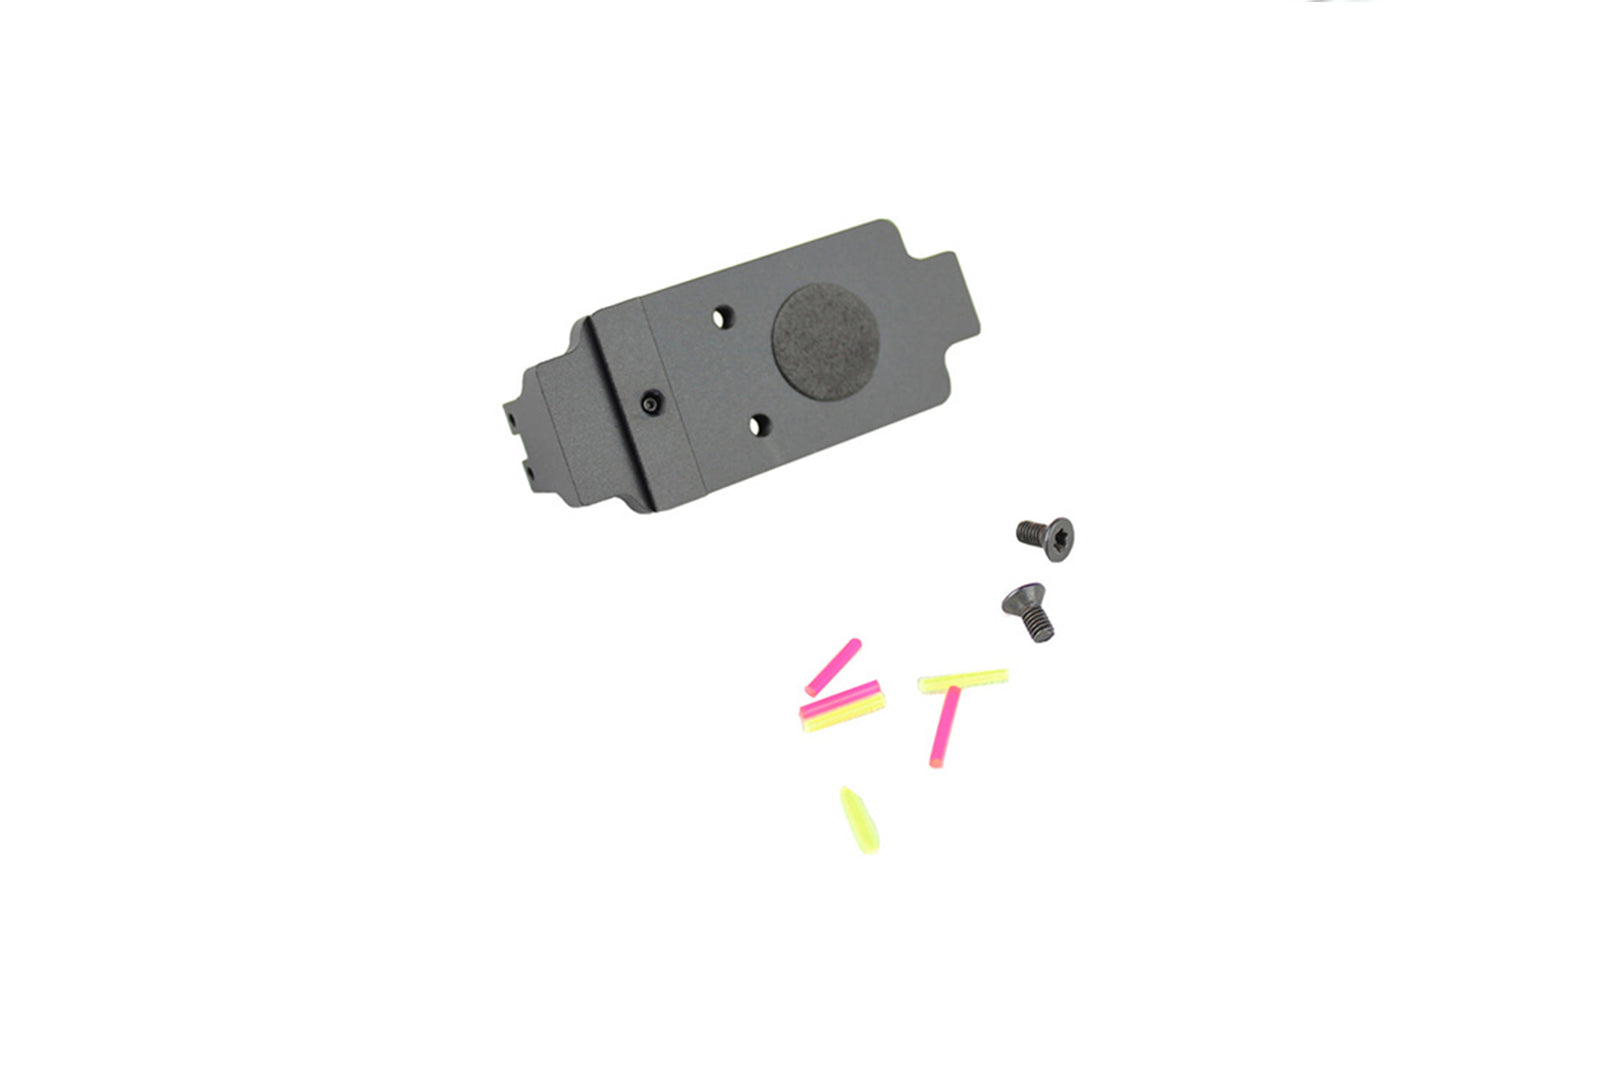 ATLAS CUSTOM WORKS RMR FIBER SIGHT BASE MOUNT FOR TM WE G17